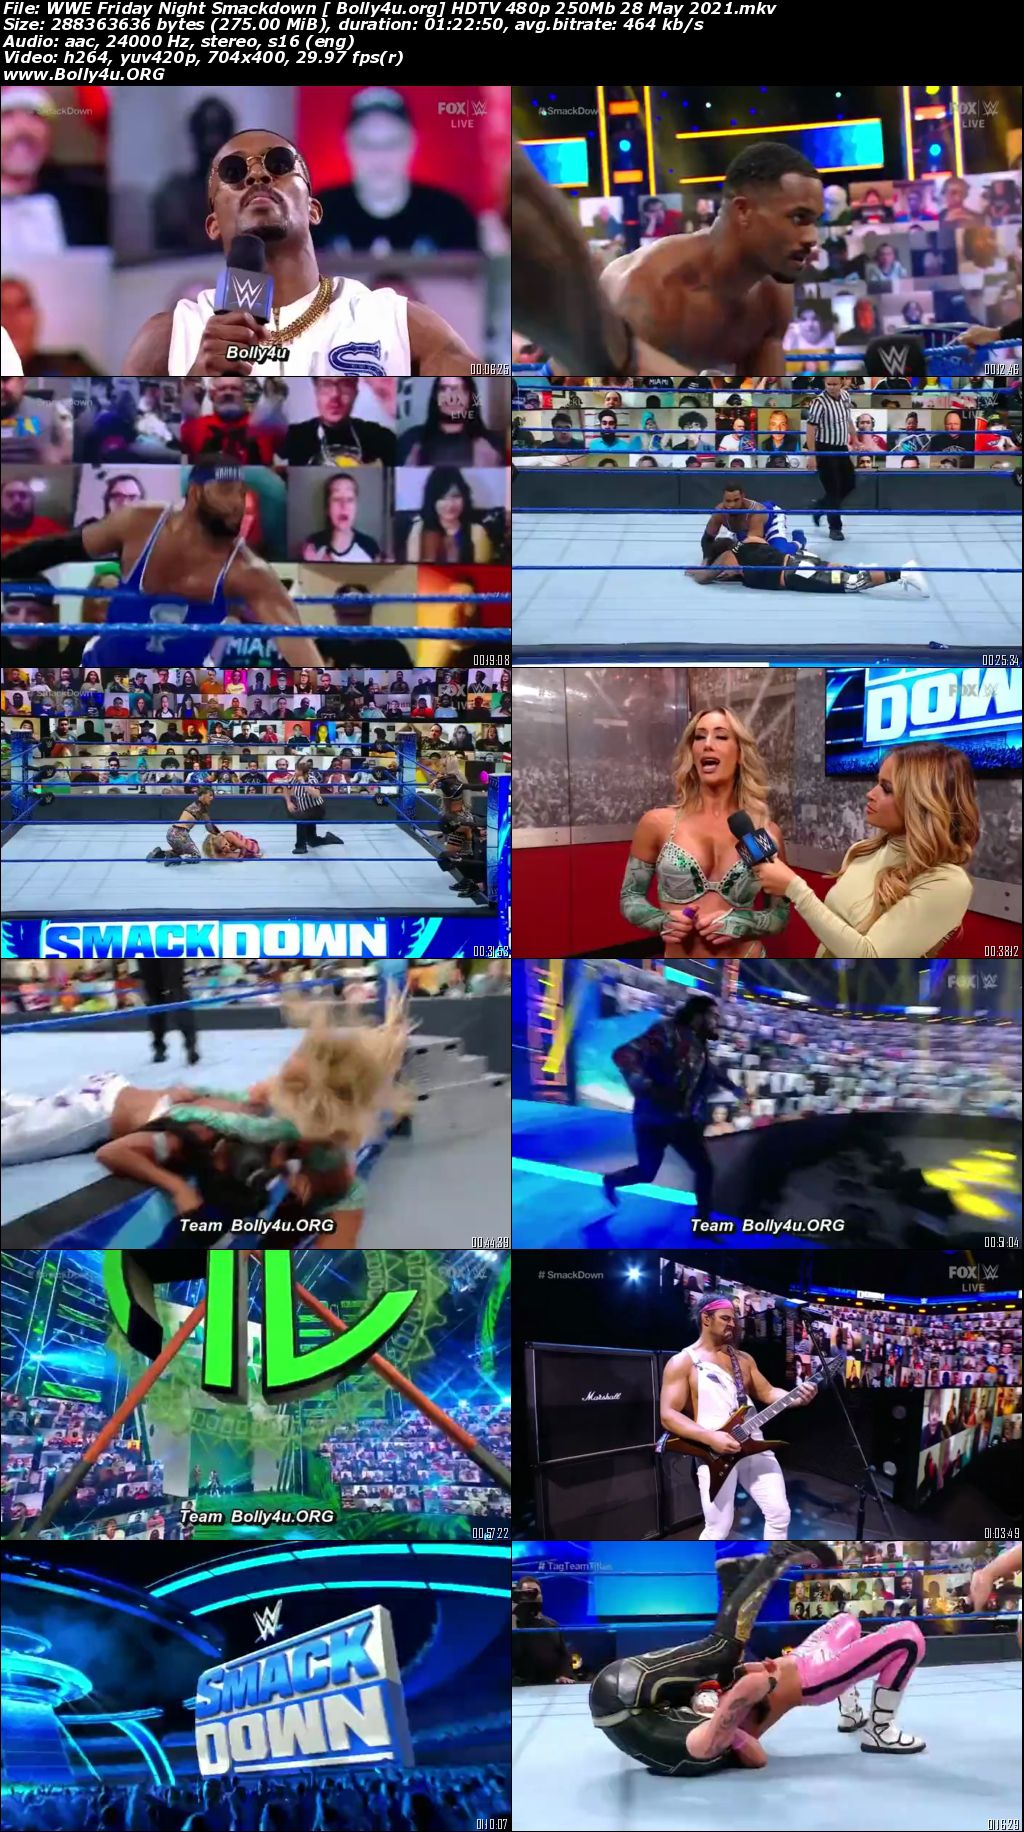 WWE Friday Night Smackdown HDTV 480p 250Mb 28 May 2021 Download